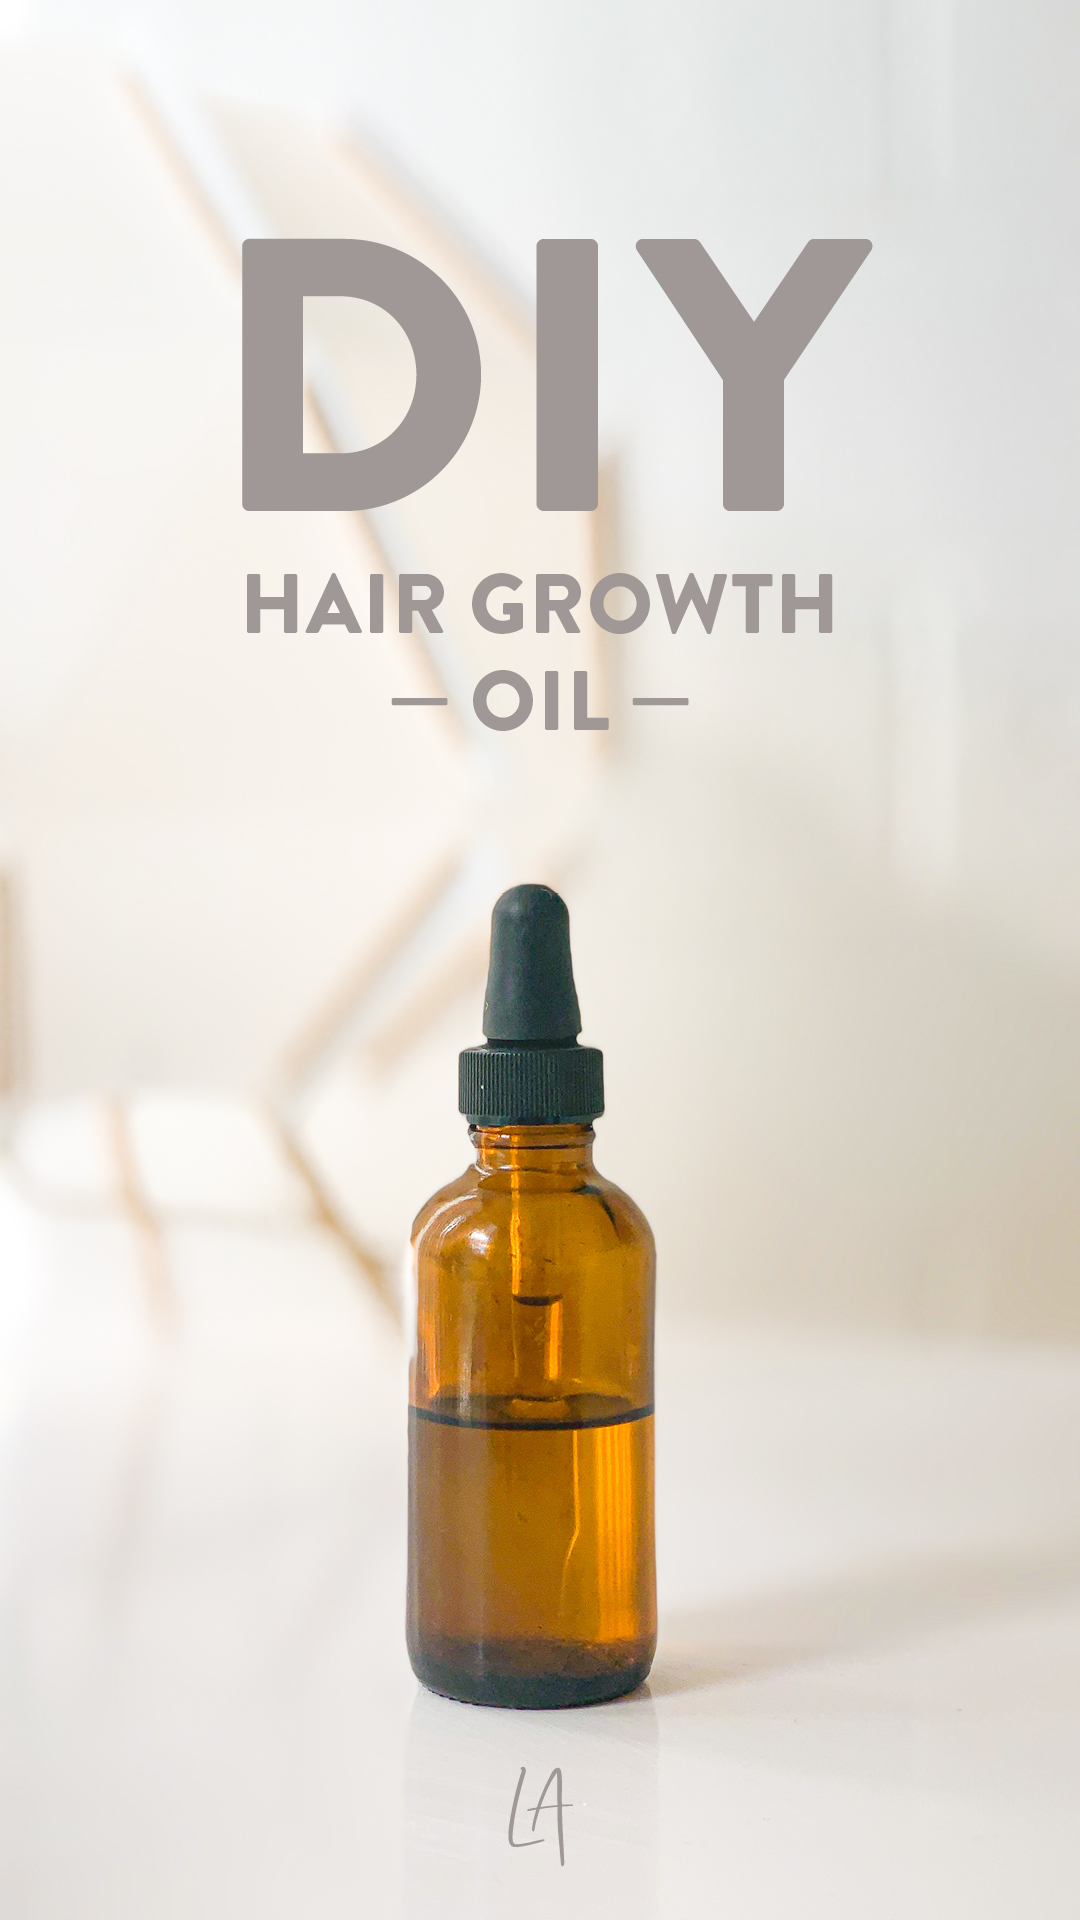 Make your own hair growth oil at home